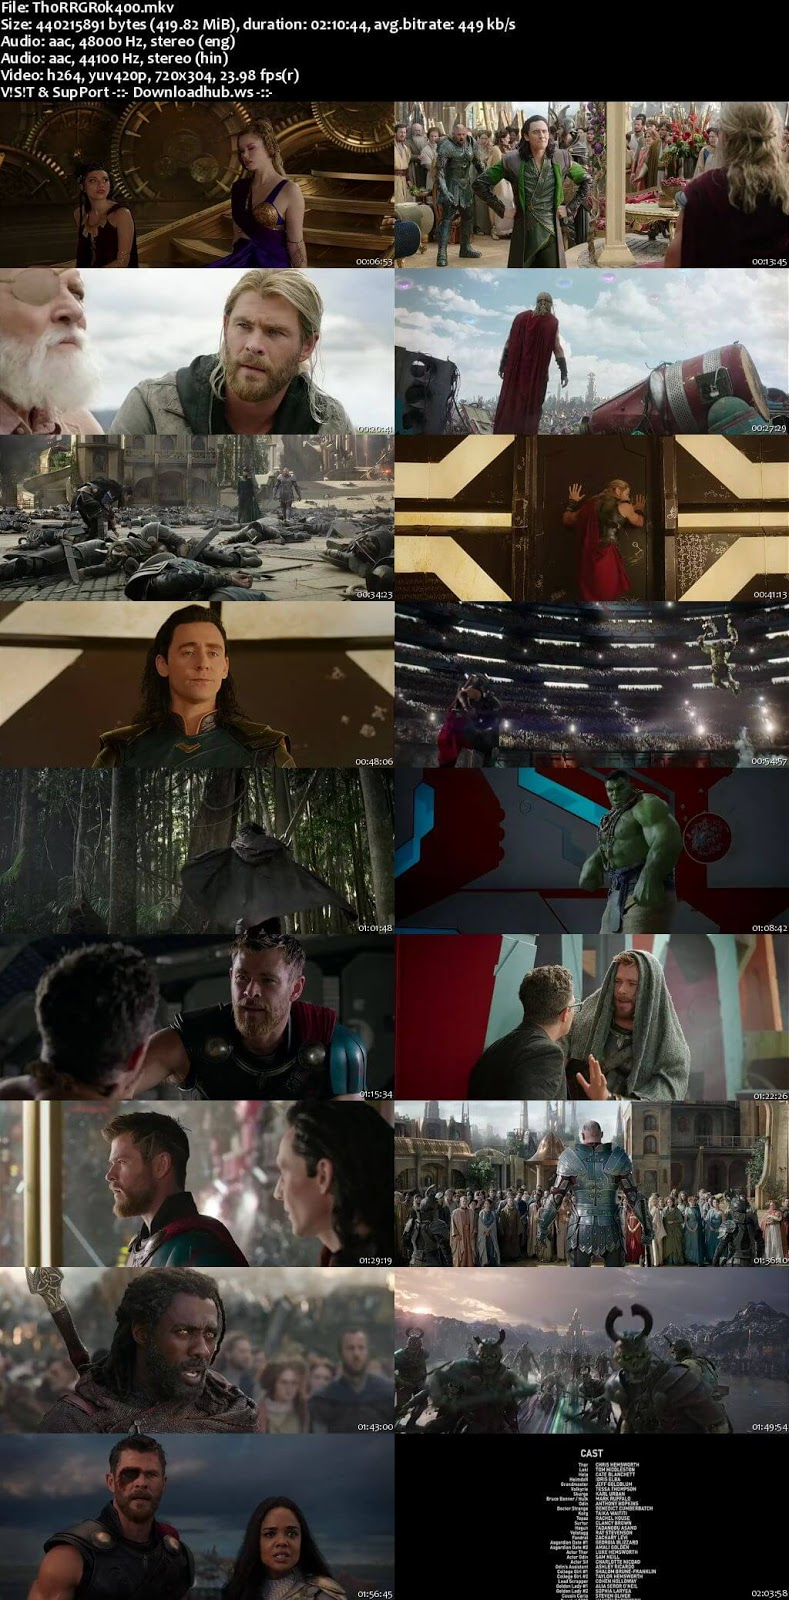 Thor Ragnarok 2017 Hindi Dual Audio 480p Web-DL Download